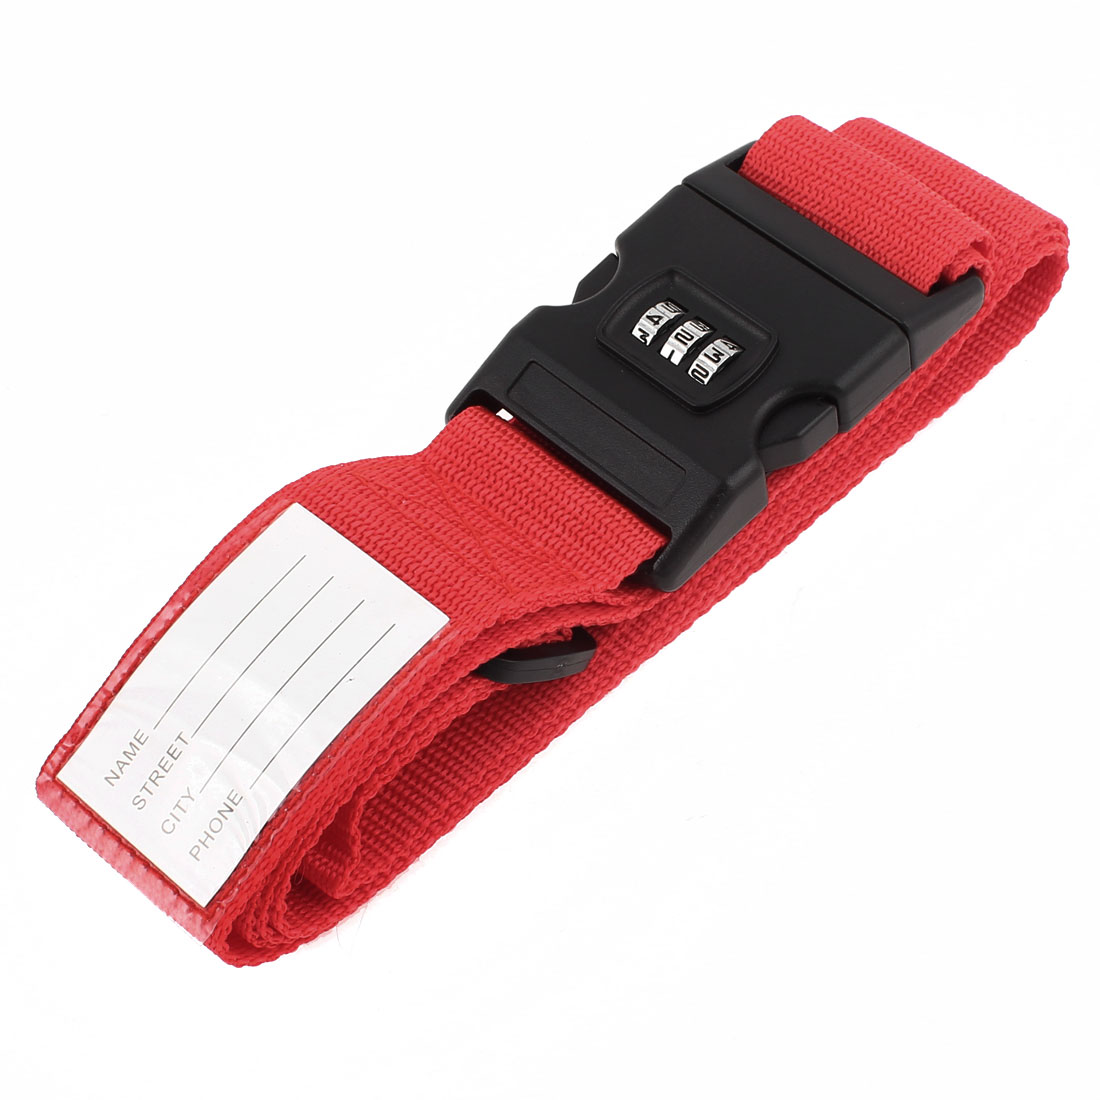 Release Buckle 3 Digits Password Combination Luggage Strap Belt Red 5cm Width